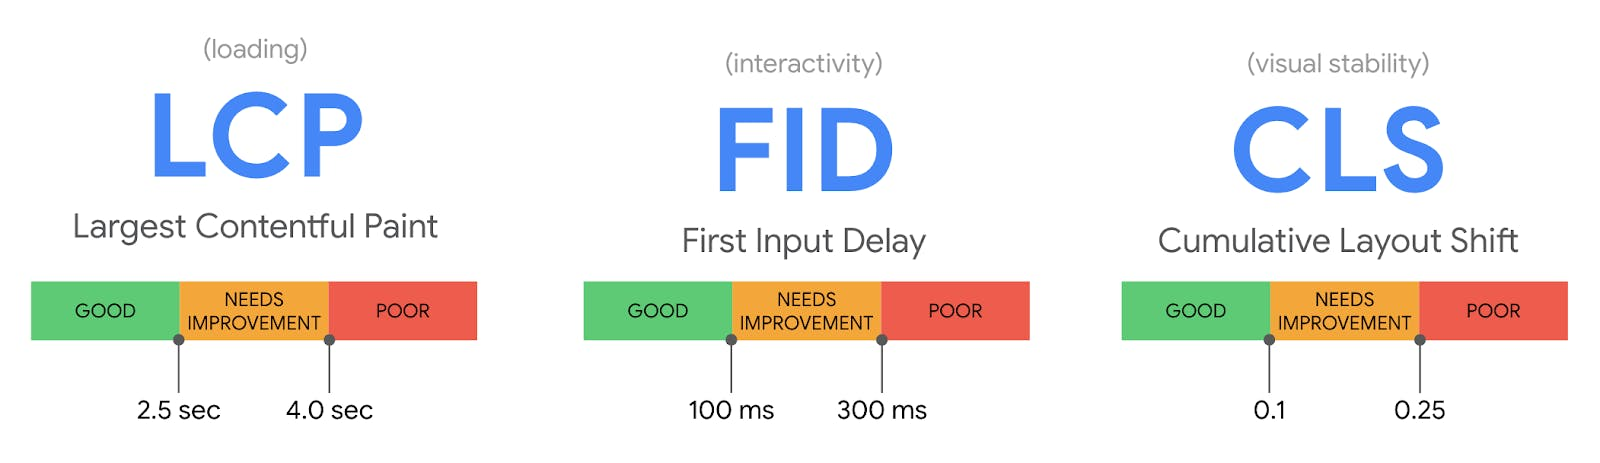 Google Core Web Vitals. LCP, loading. FID, interactivity. CLS, visual stability.